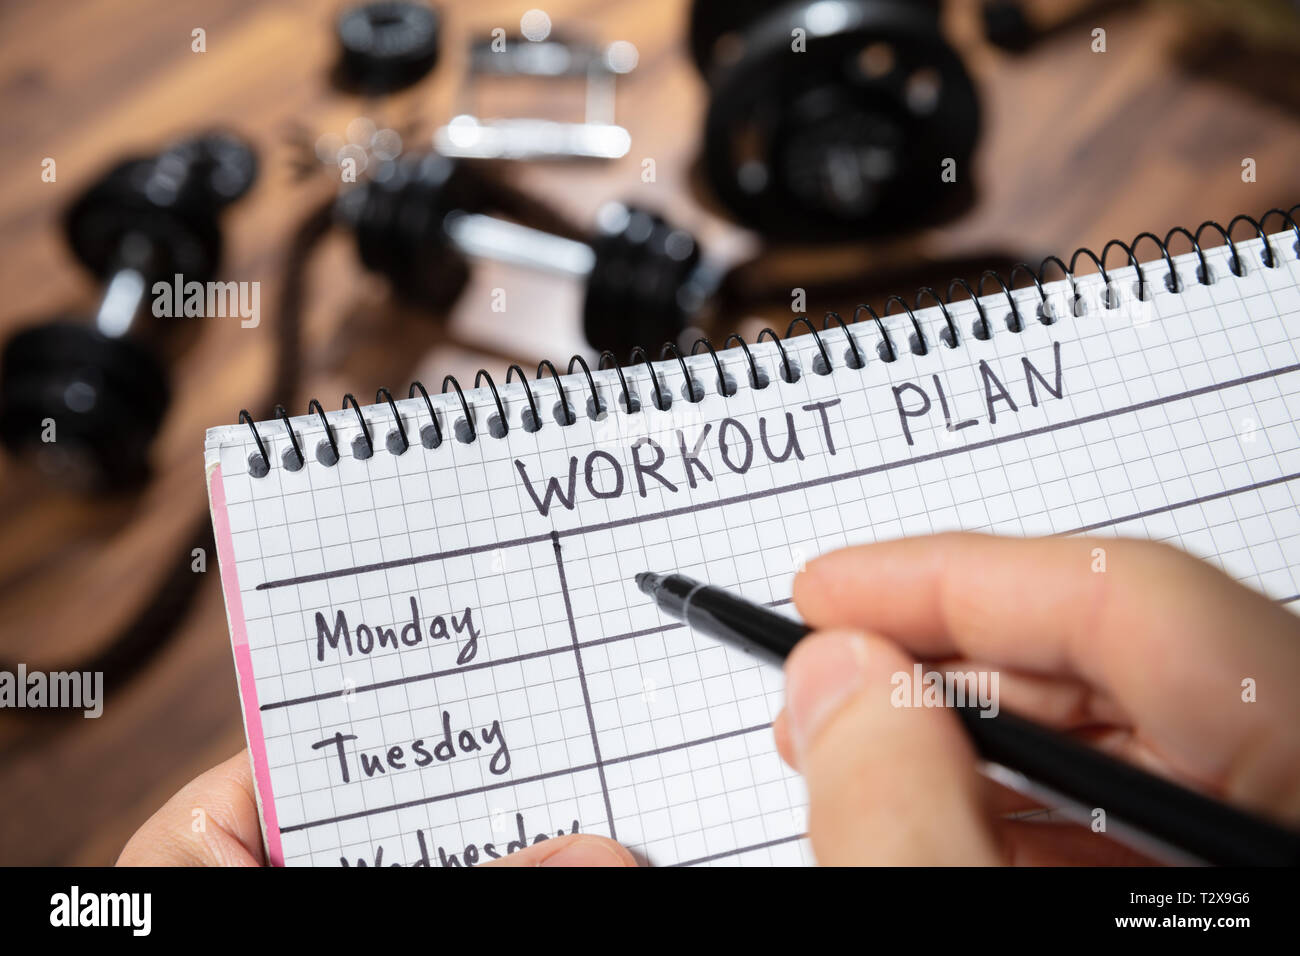 Close-up Of A Human's Hand Writing Workout Plan On Diary In The Gym - Stock Image